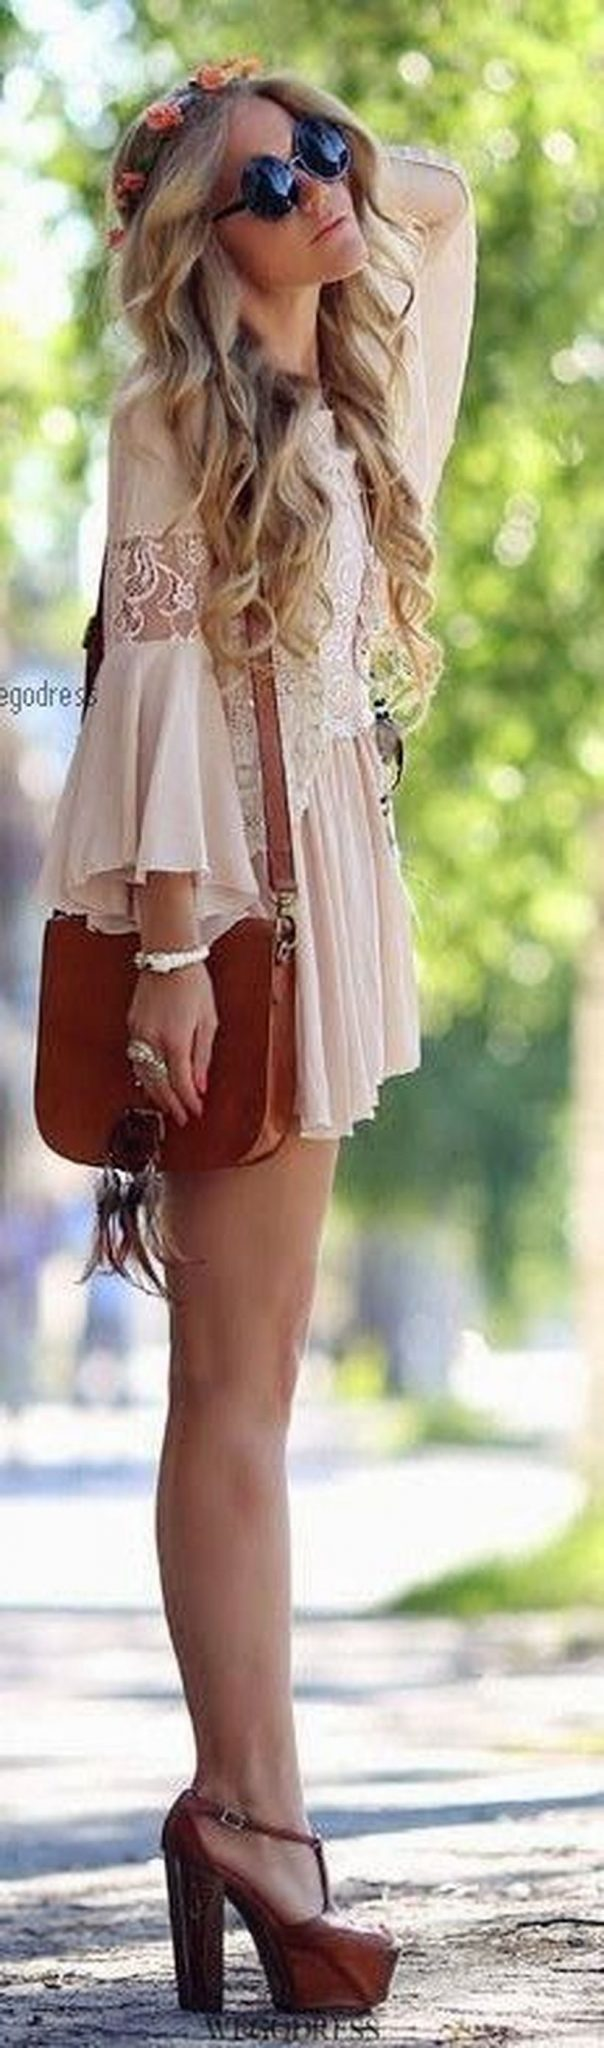 Stylish bohemian boho chic outfits style ideas 105